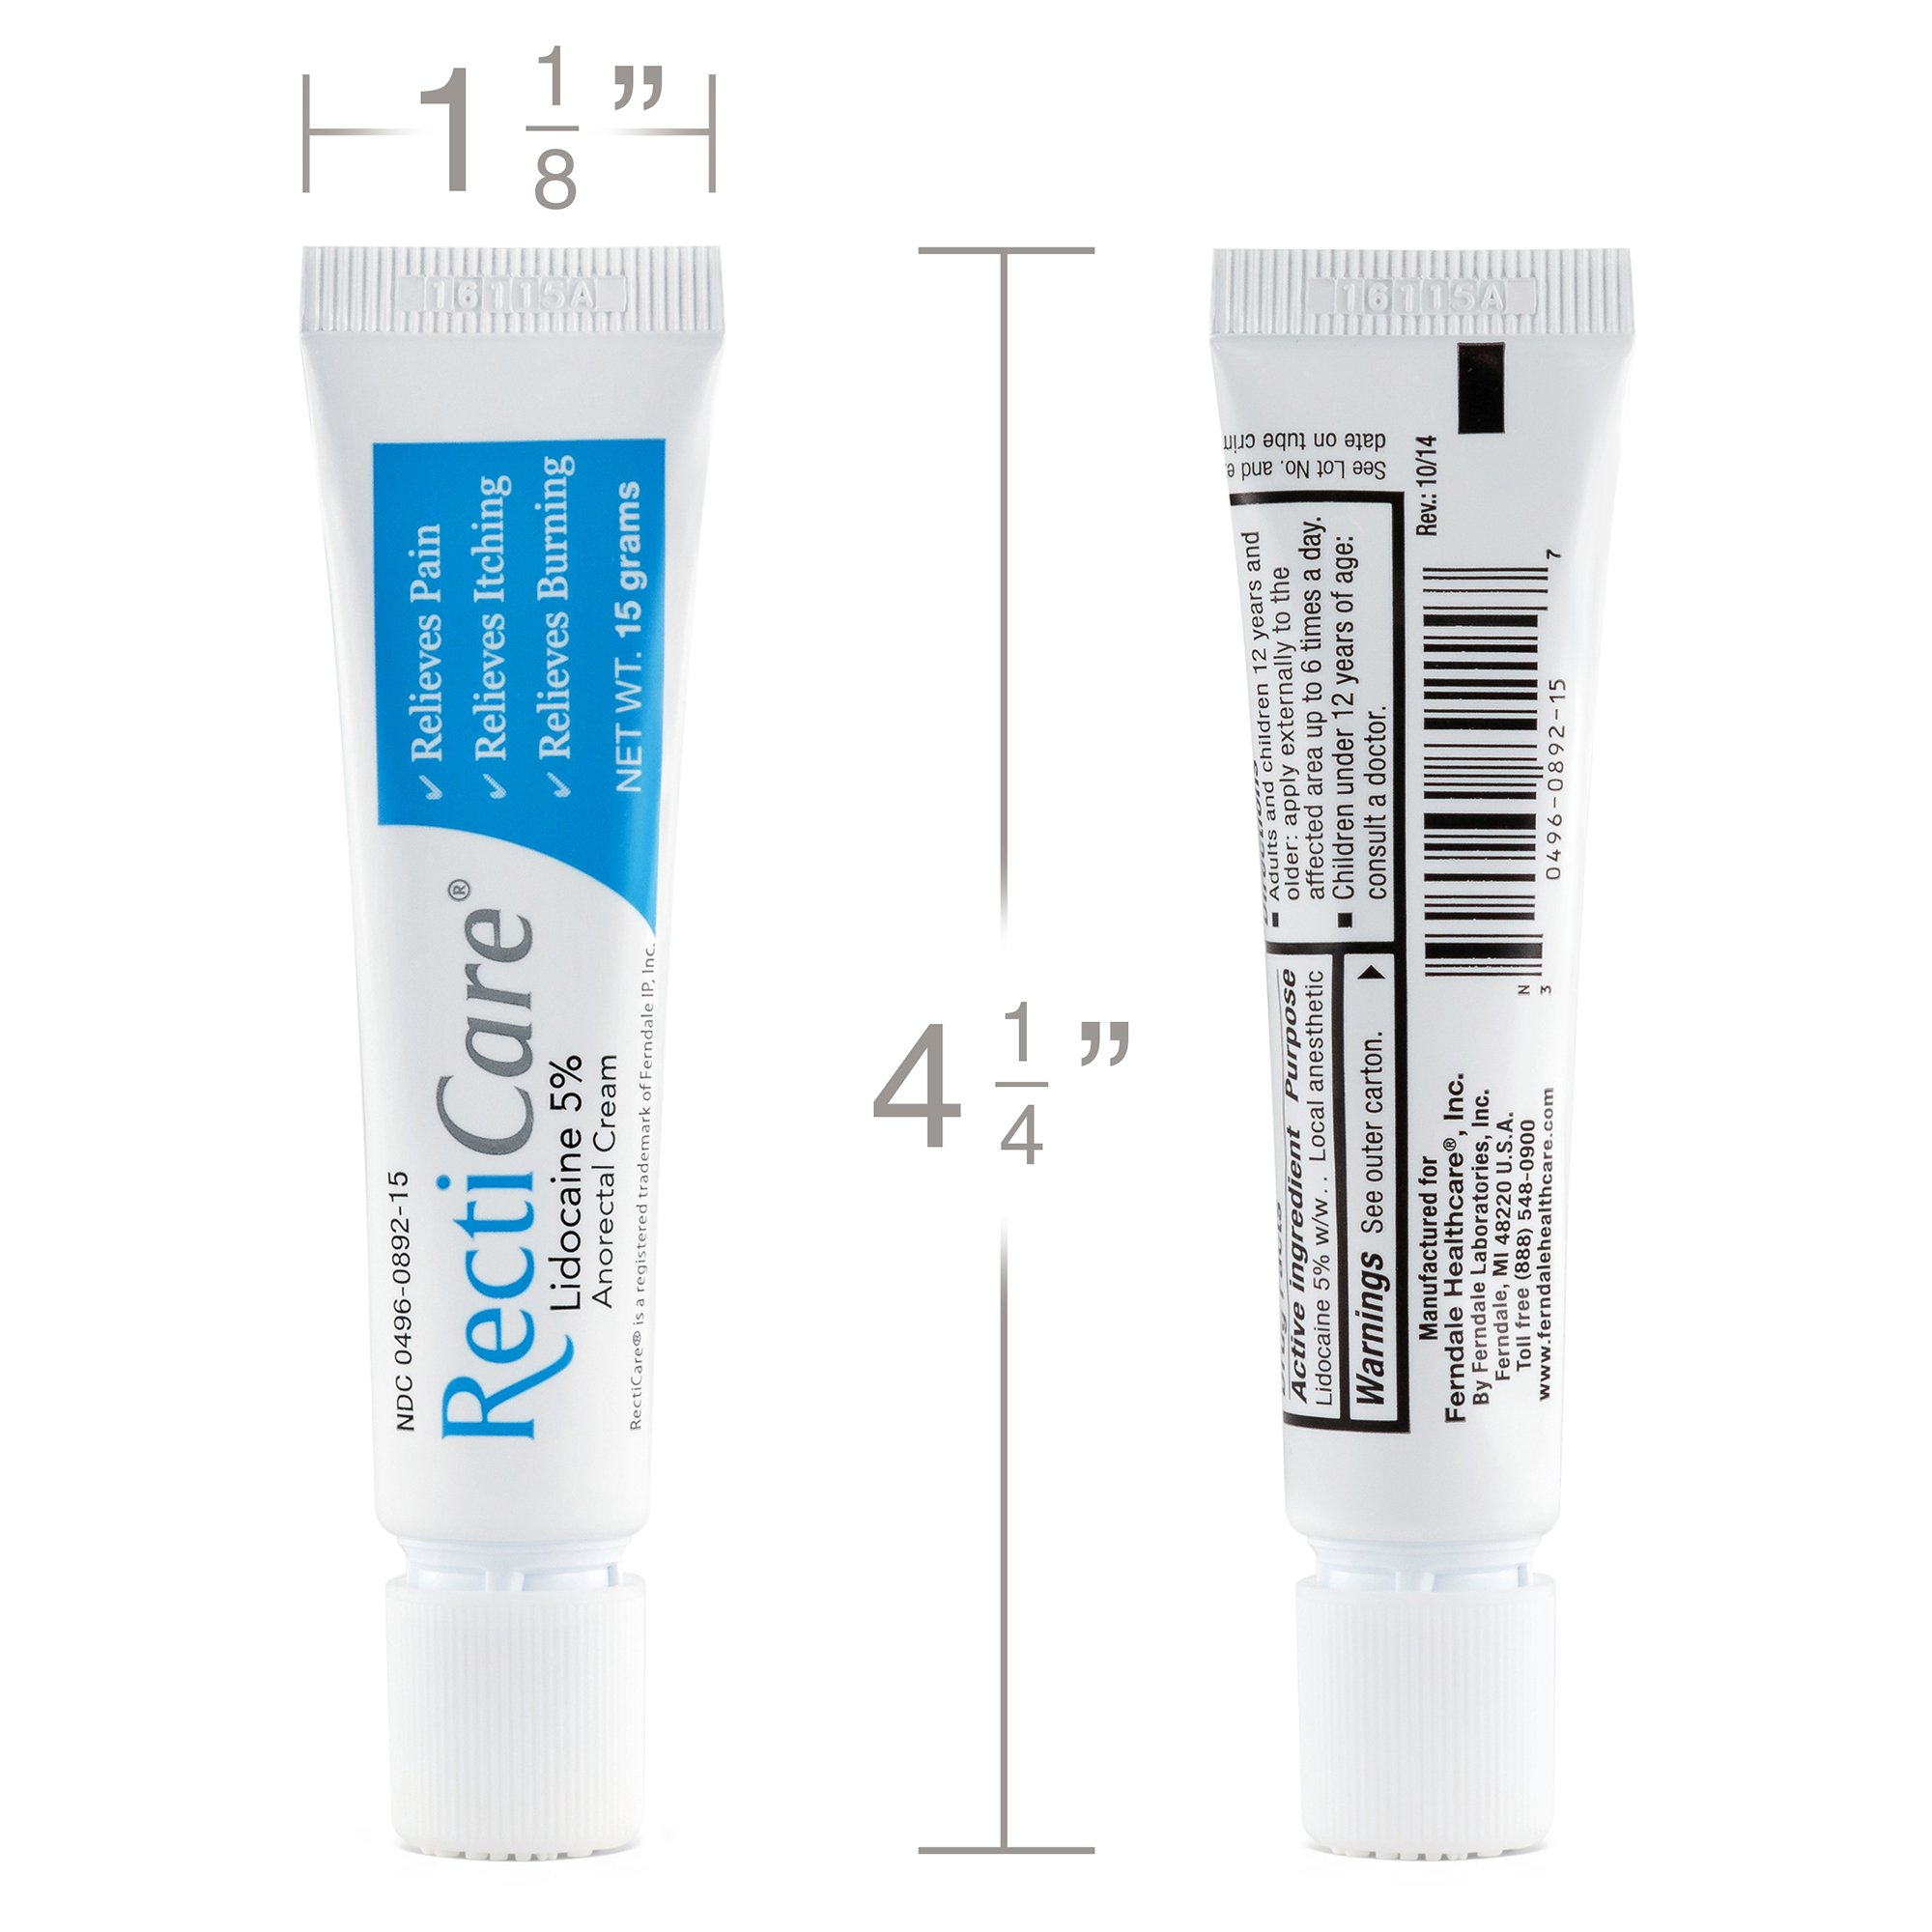 RectiCare Anorectal Lidocaine 5% Cream: Treatment for Hemorrhoids & Other Anorectal Disorders - 15g Tube by Recticare (Image #2)